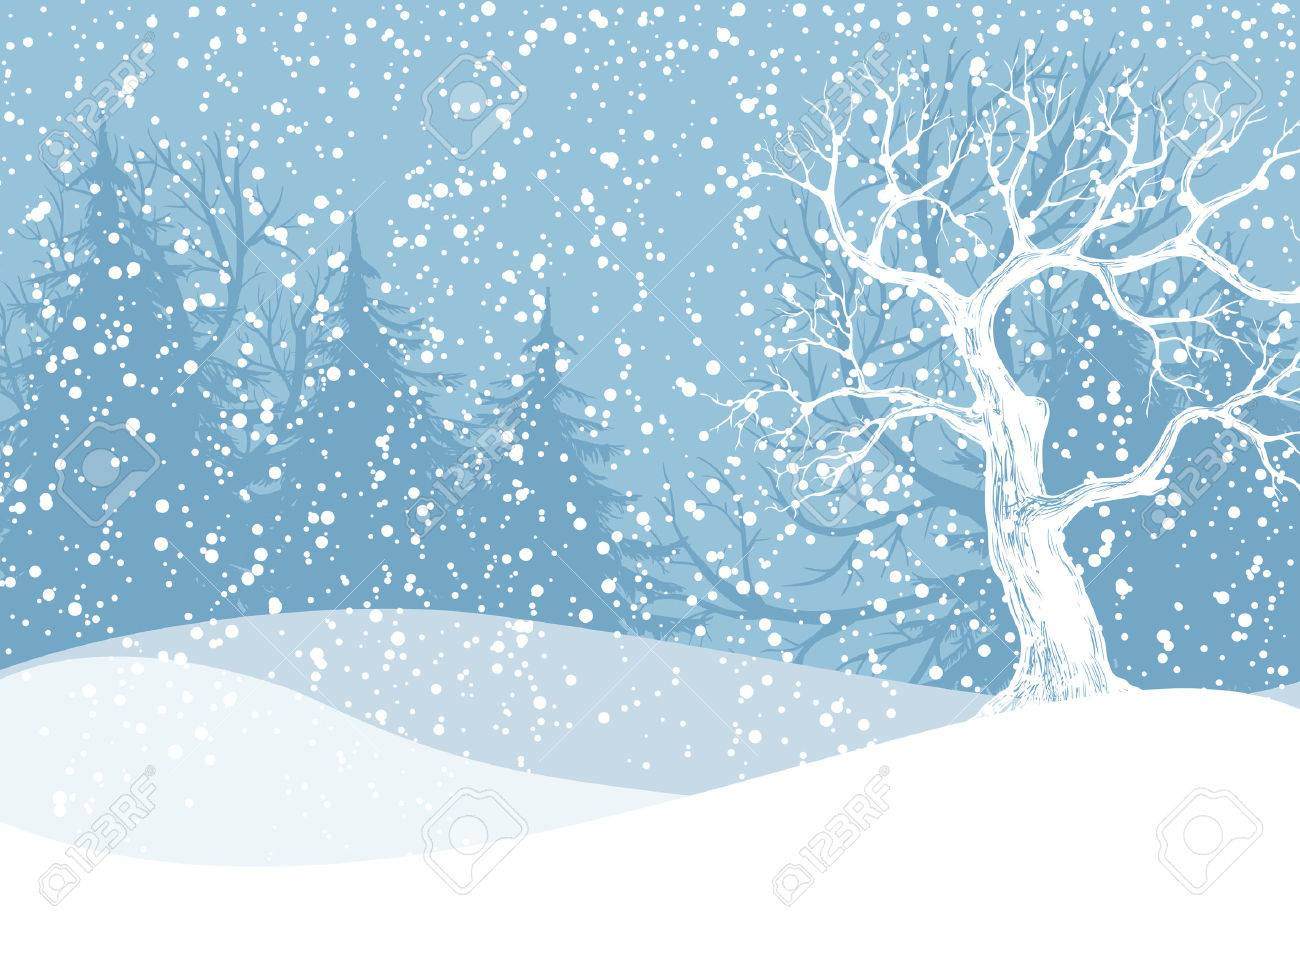 Winter landscape with fir trees and falling snow. Christmas illustration. Vector illustration contains gradient meshes. - 50018529